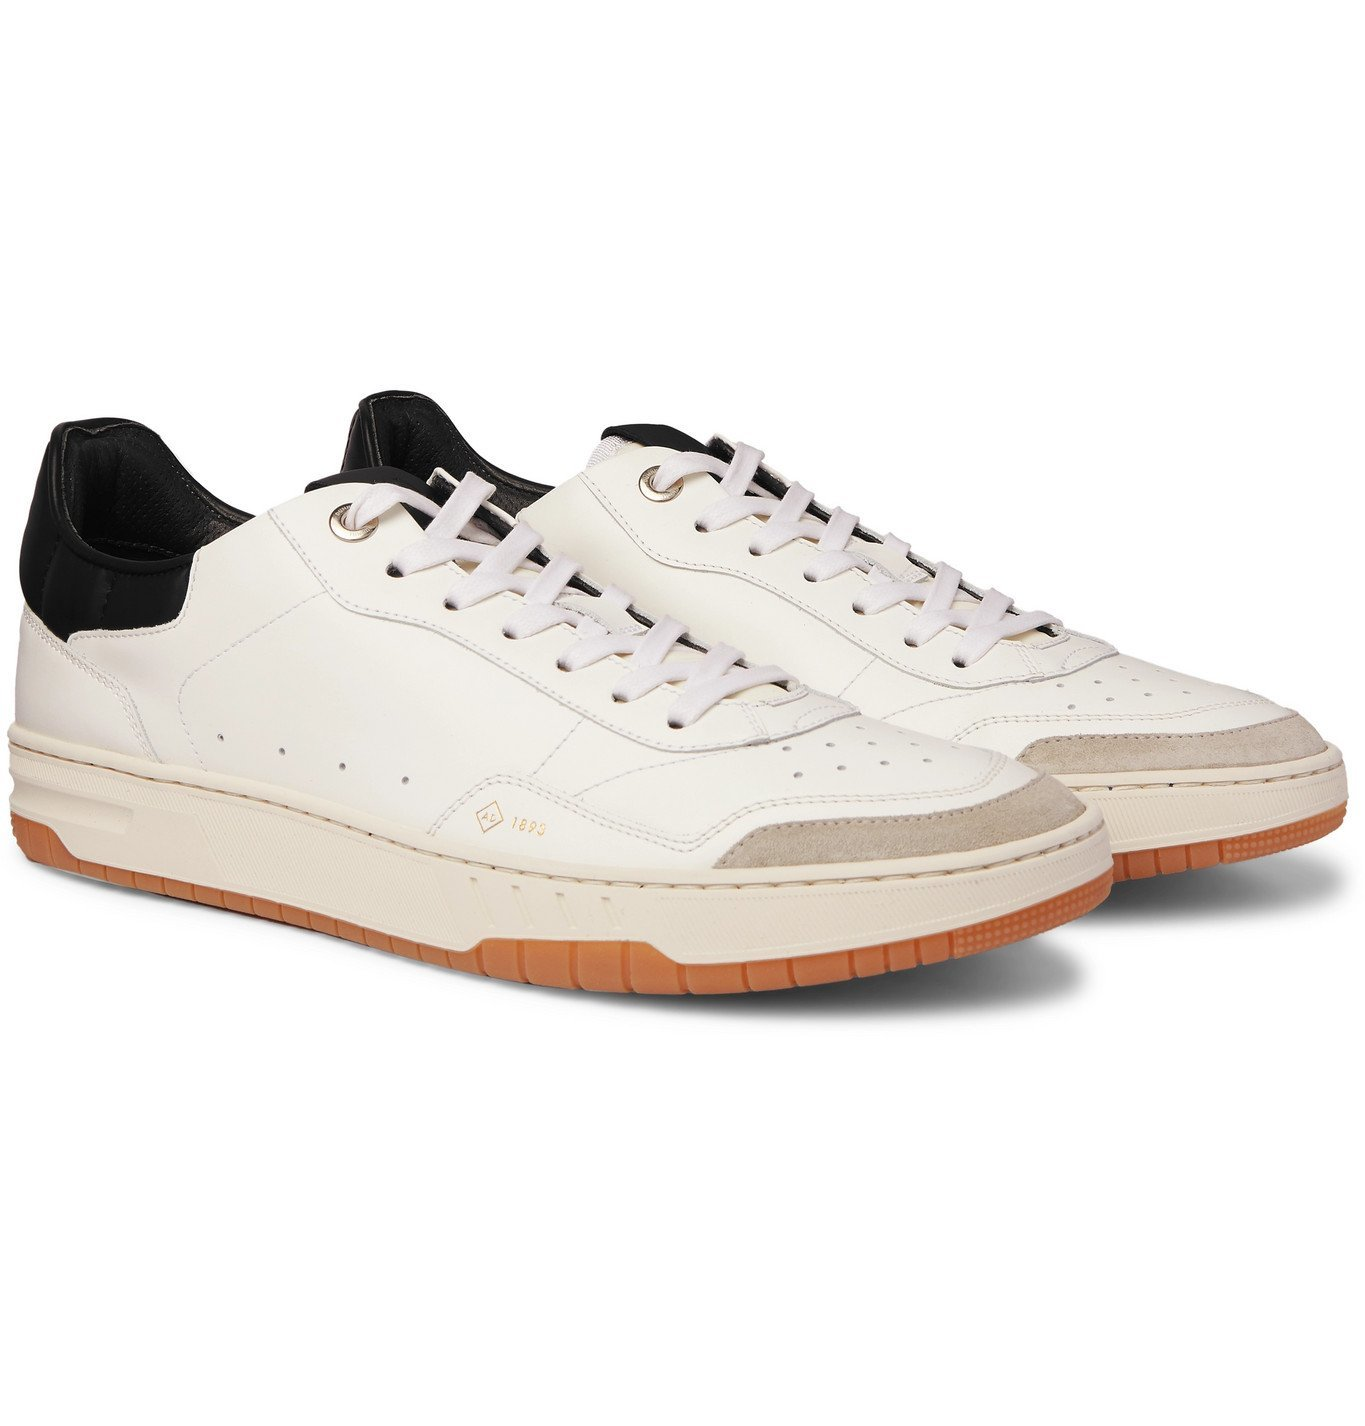 Dunhill - Court Elite Suede-Trimmed Leather Sneakers - White